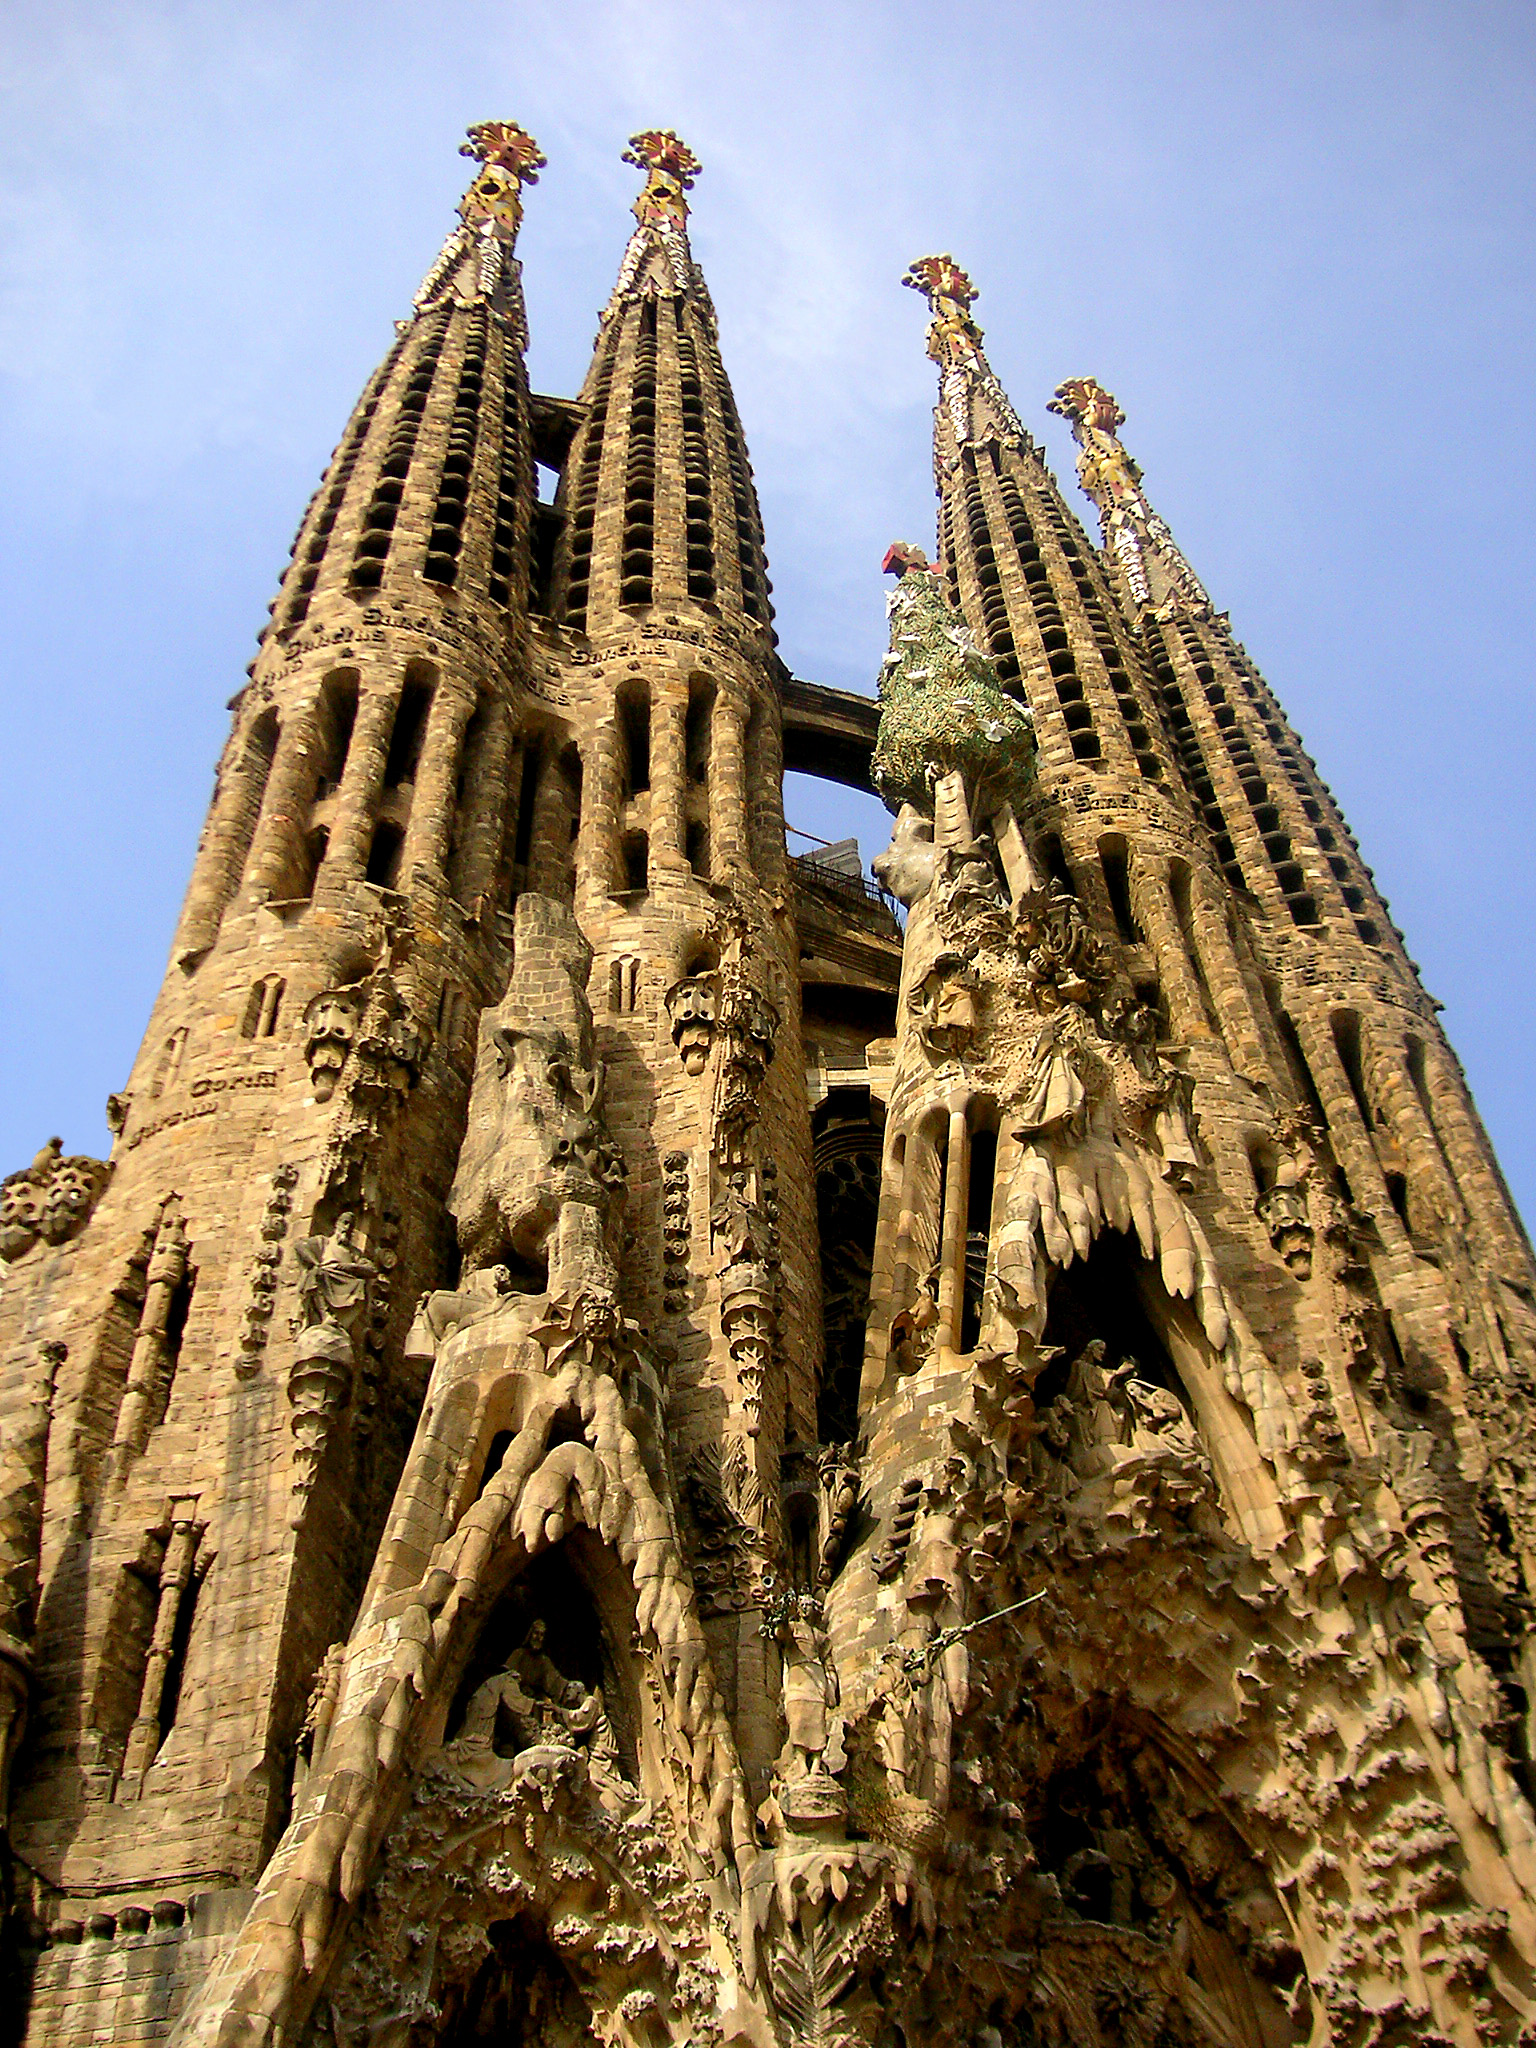 Sagrada Familia: Increased Visitor Numbers As Barcelona Continues Recovery